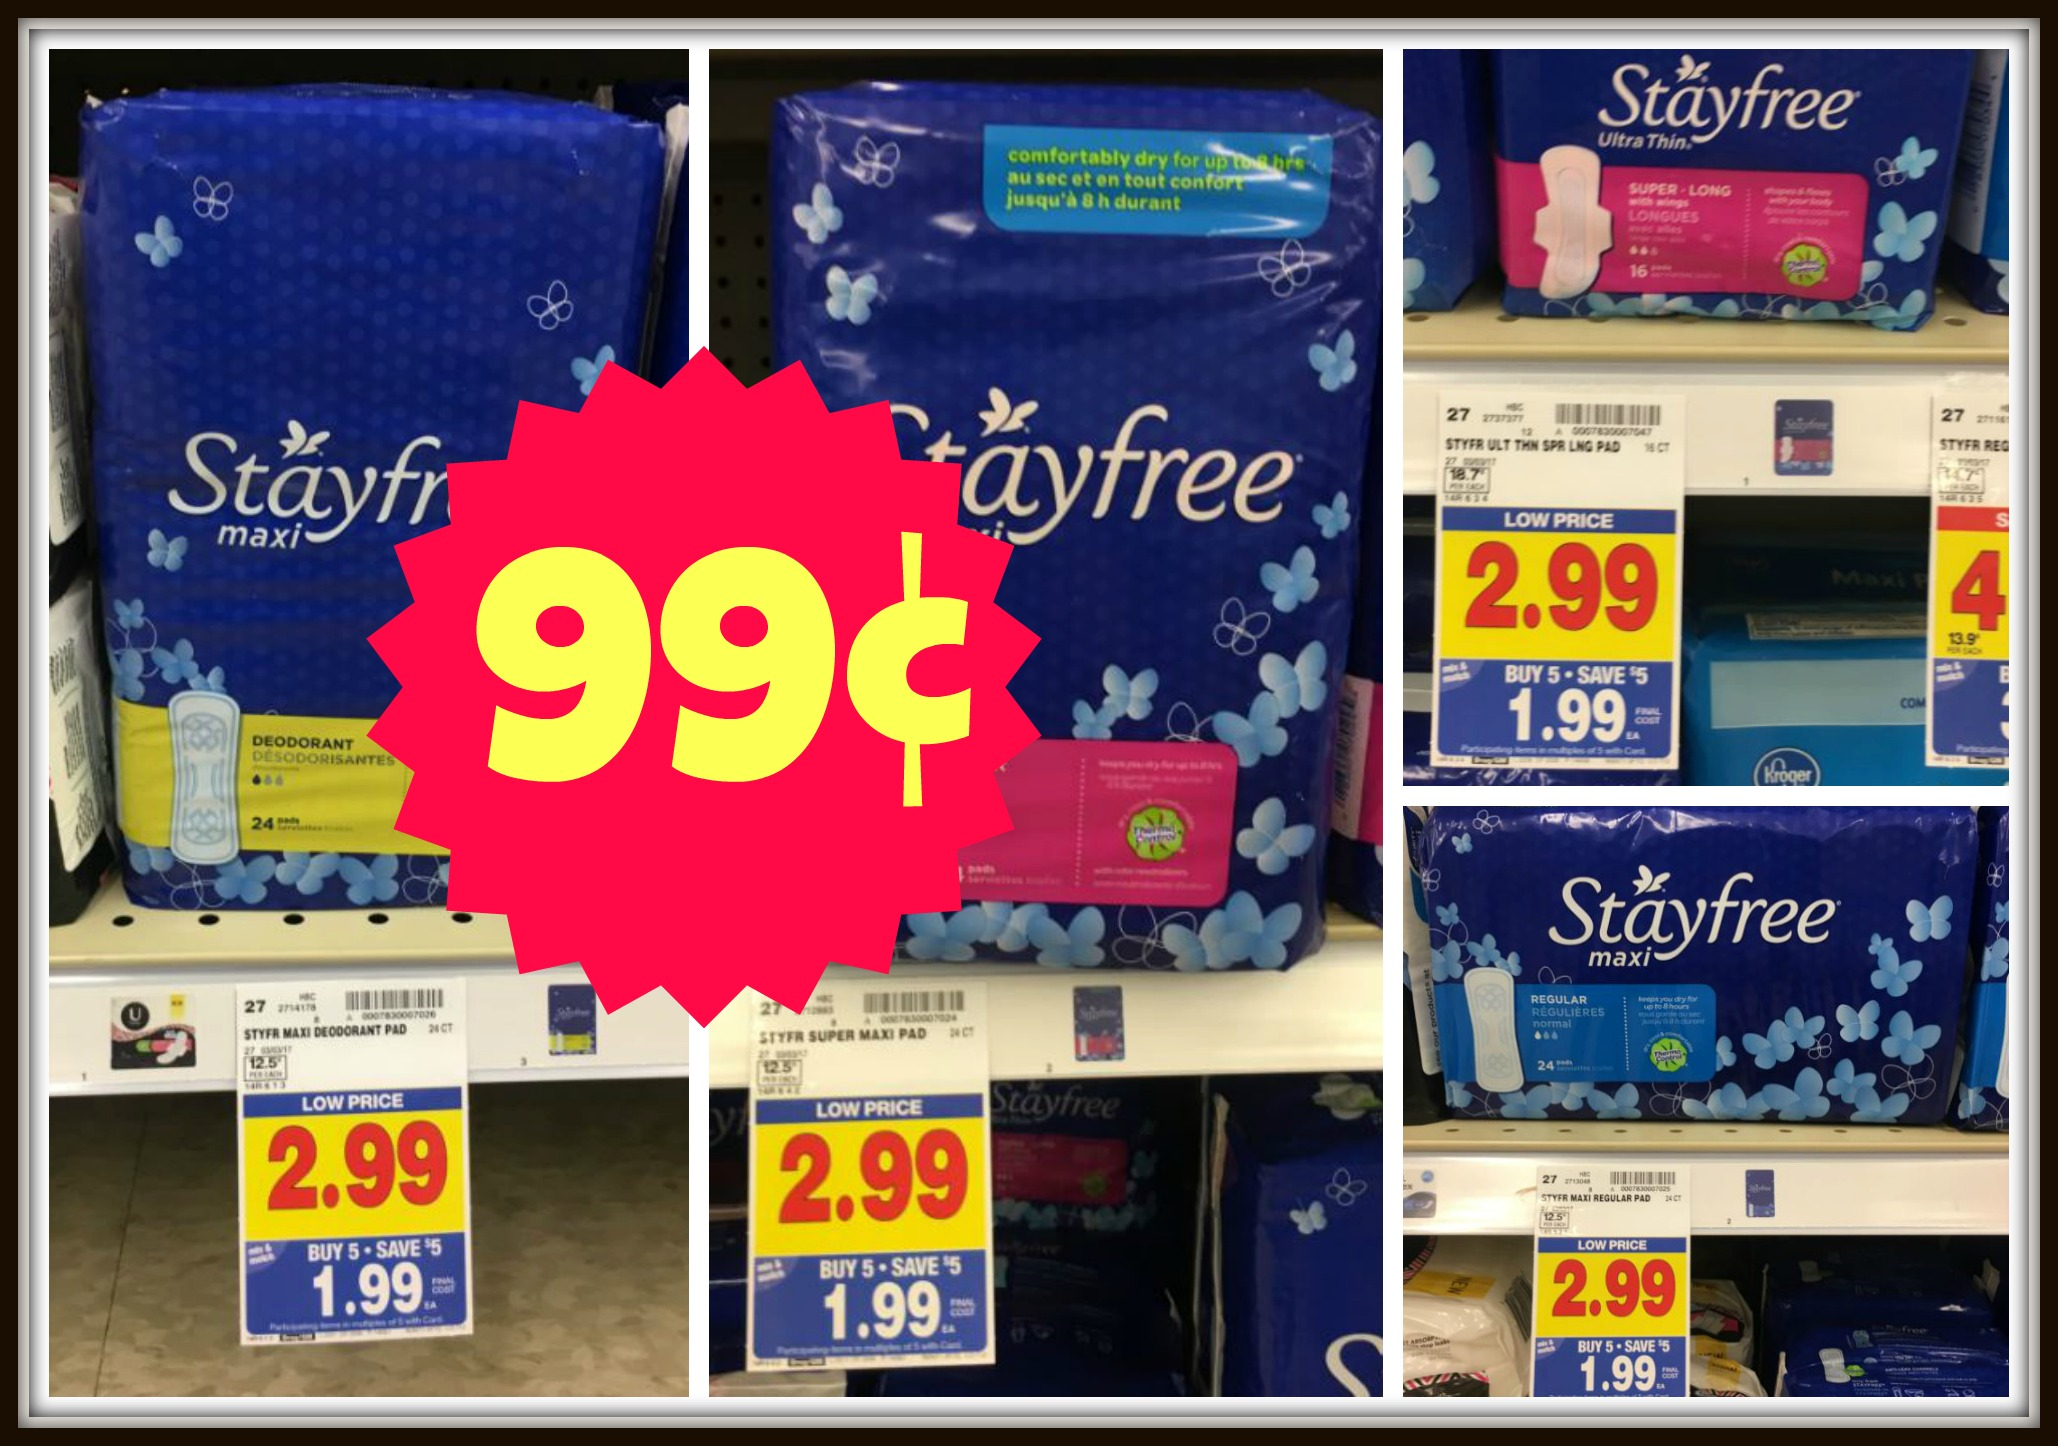 photograph about Stayfree Printable Coupon titled Contemporary Stayfree Coupon \u003d Pads Simply $0.99 with Kroger Mega Occasion